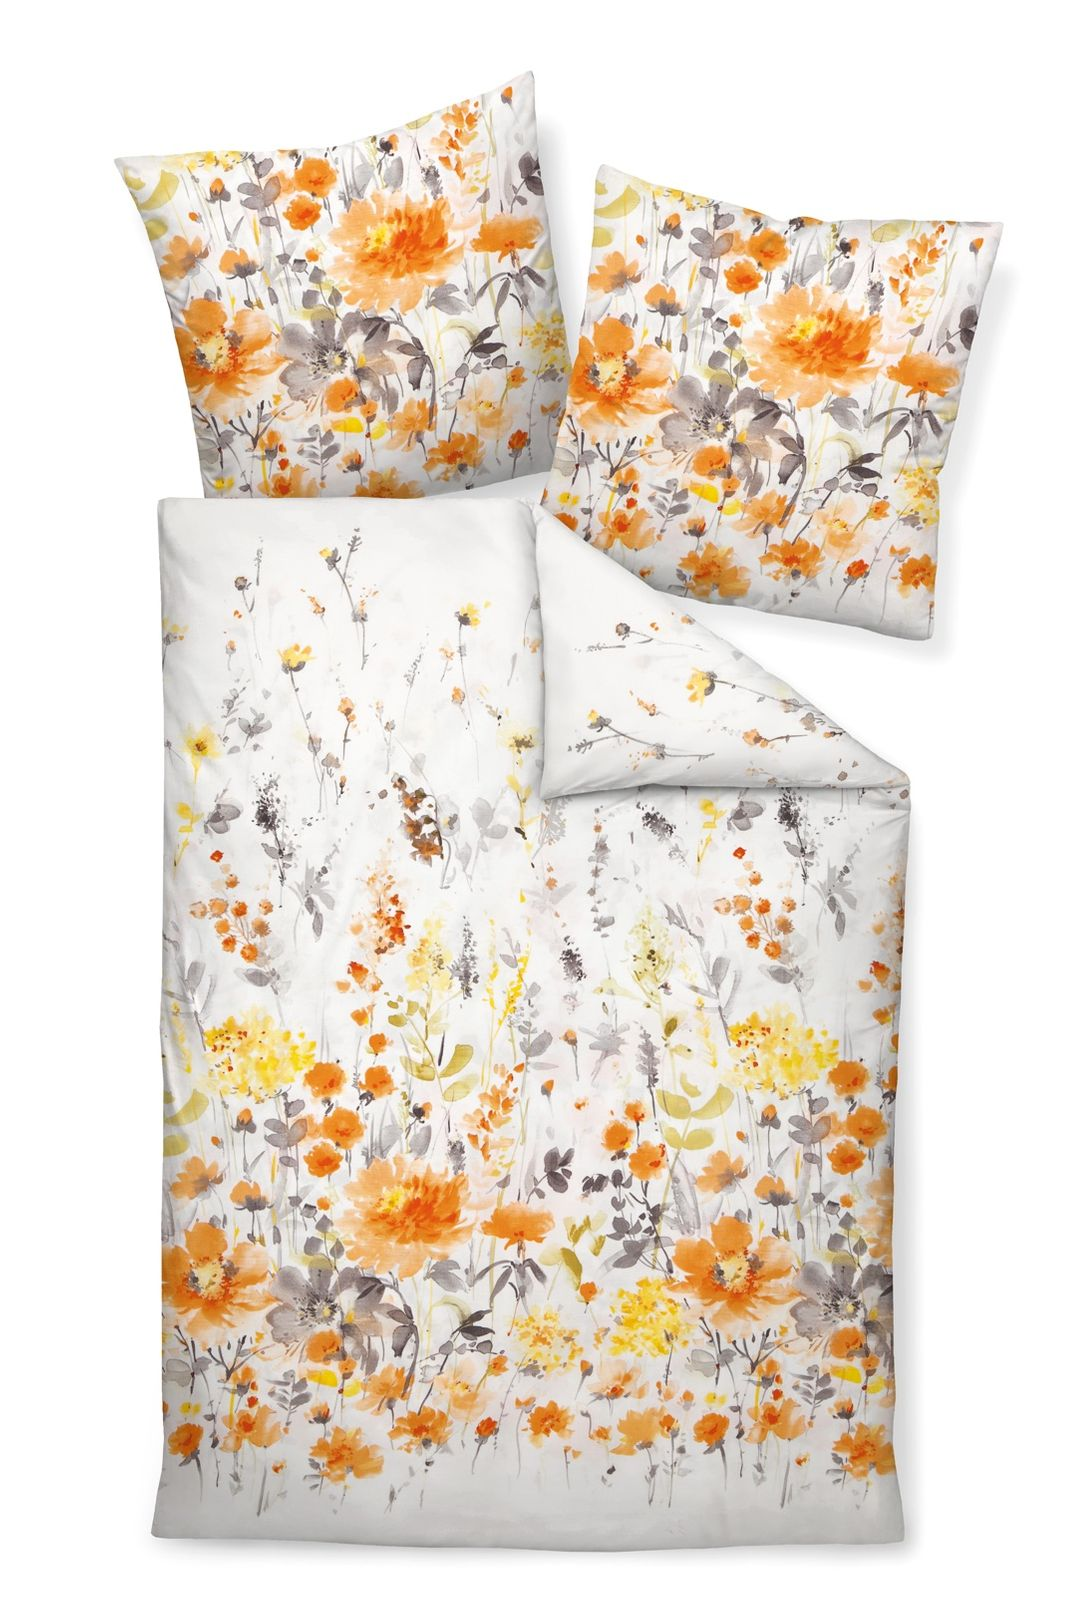 Janine Bettwäsche Moments 98021 04 Orange Gelb Grau Mako Satin